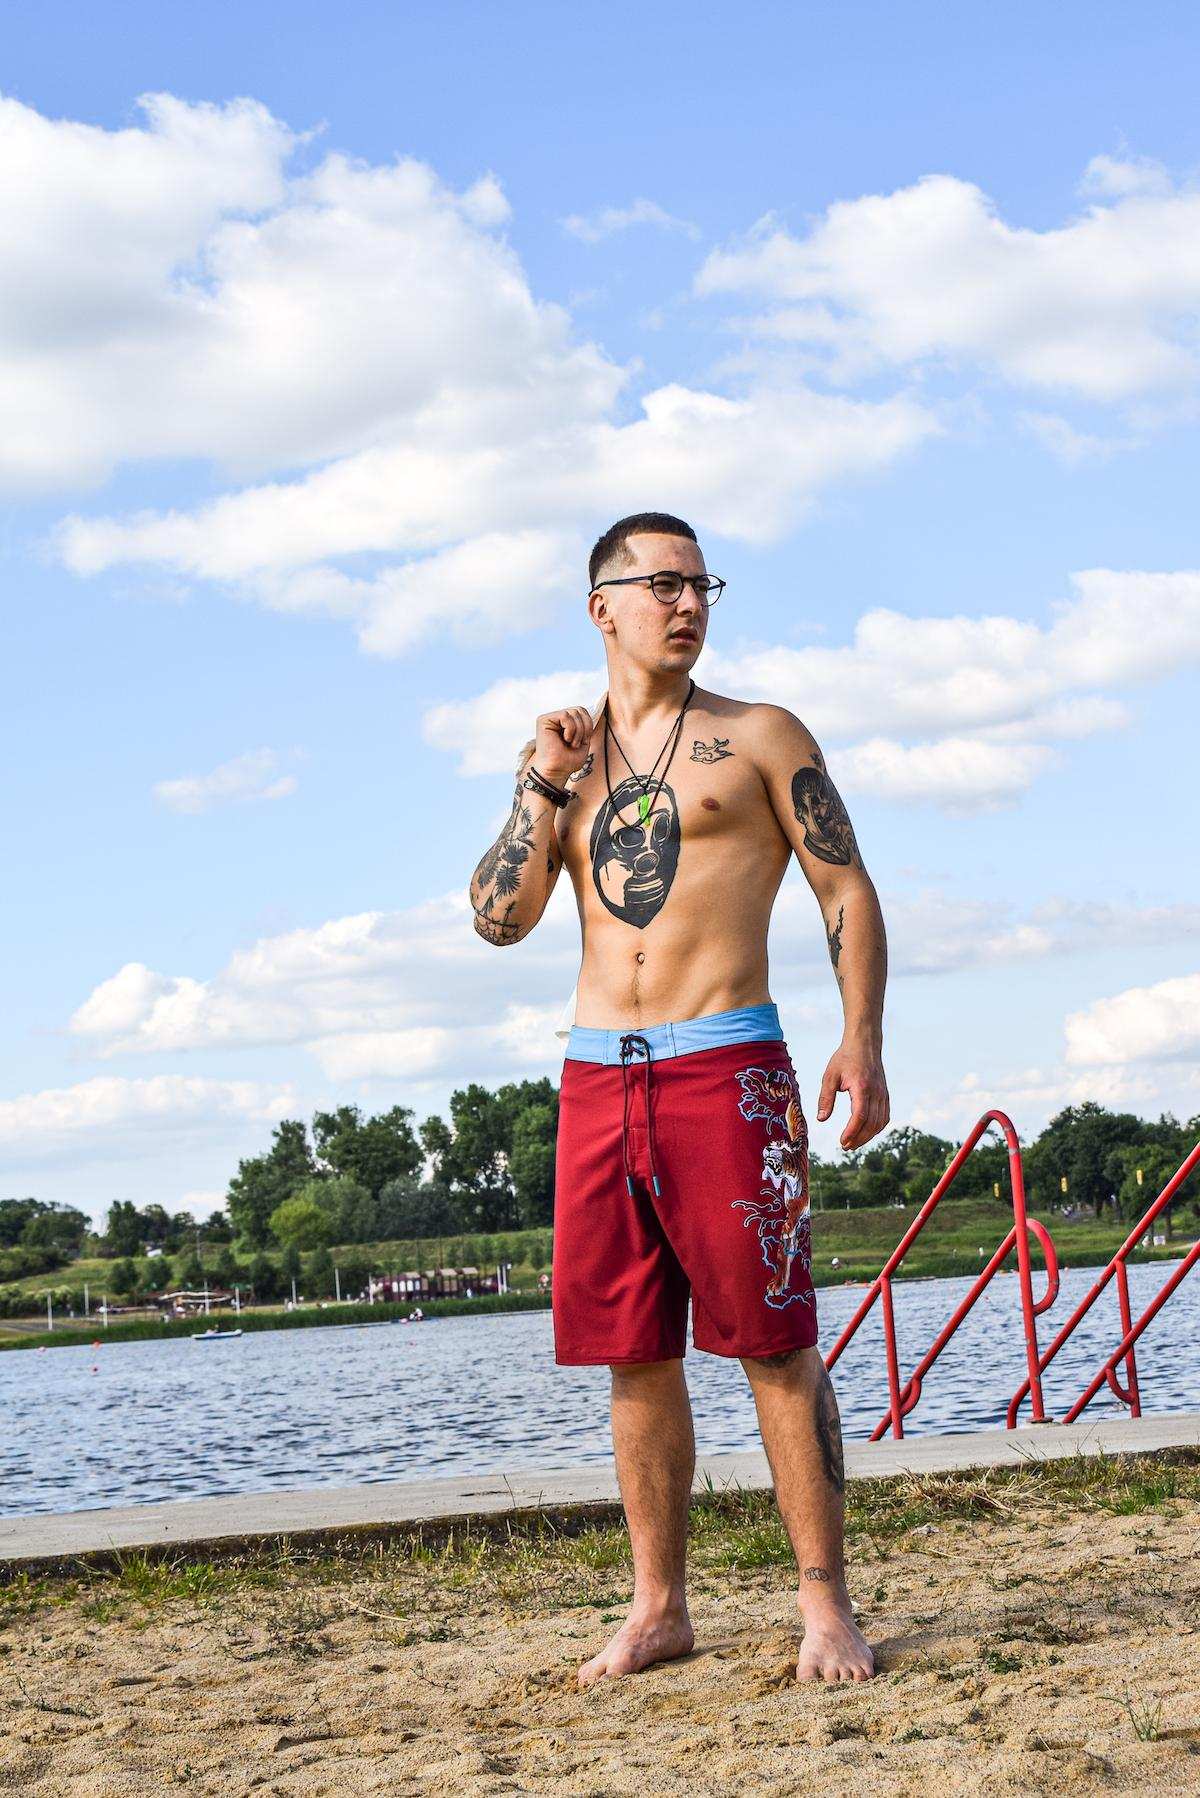 An excellent selection of stylish and comfortable clothing for tattoo lovers and beach lifers